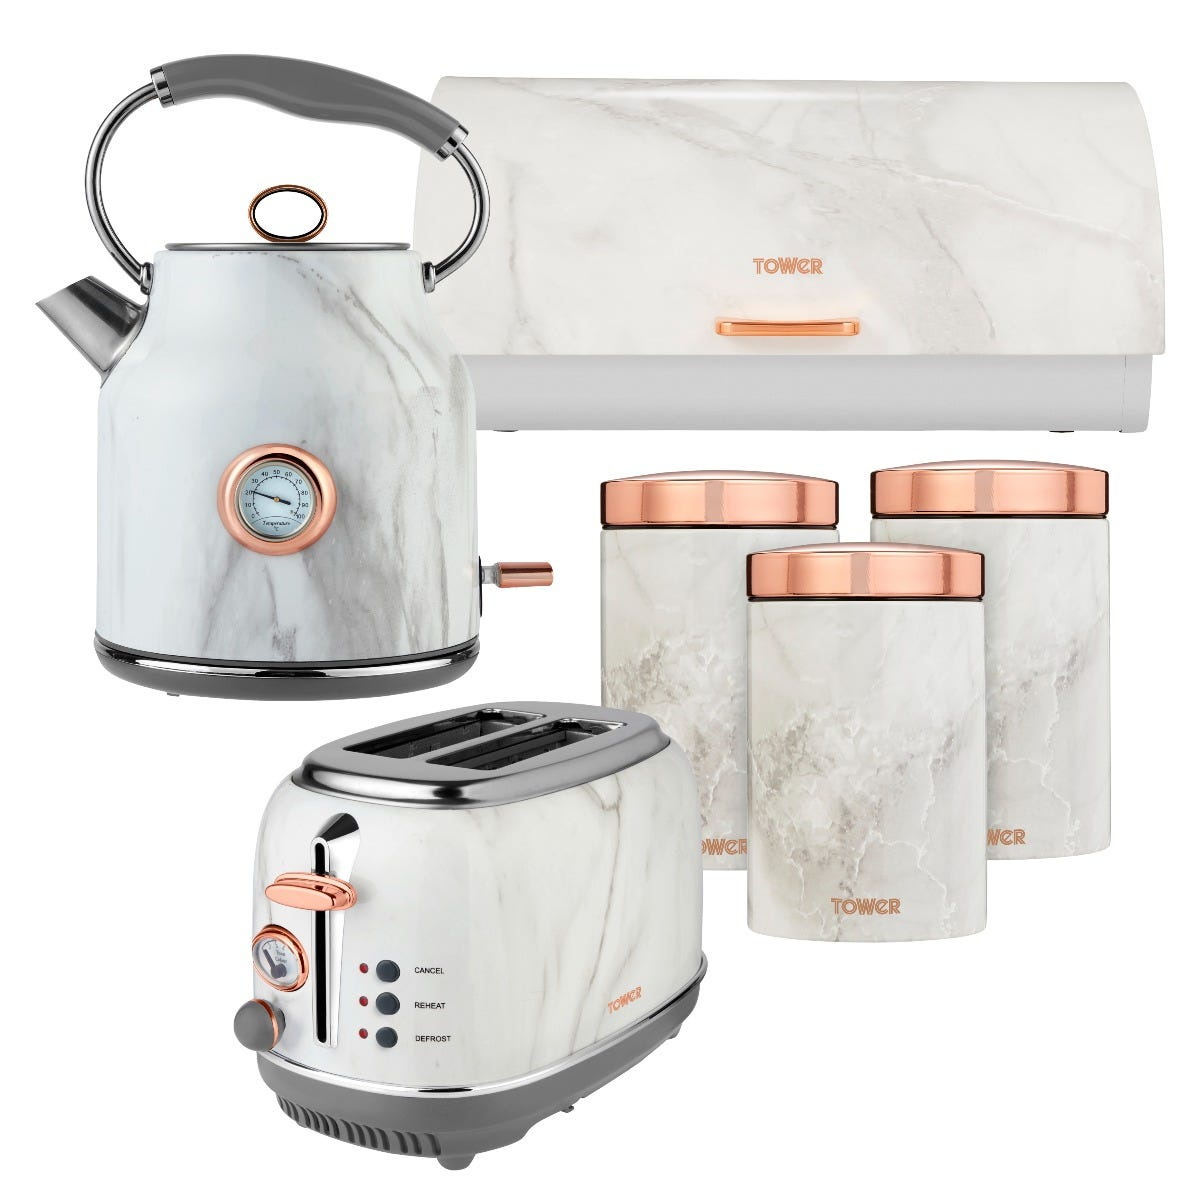 Tower 1.7L Kettle and 2 Slice Toaster Set with 3 Canisters and Bread Bin - White Marble